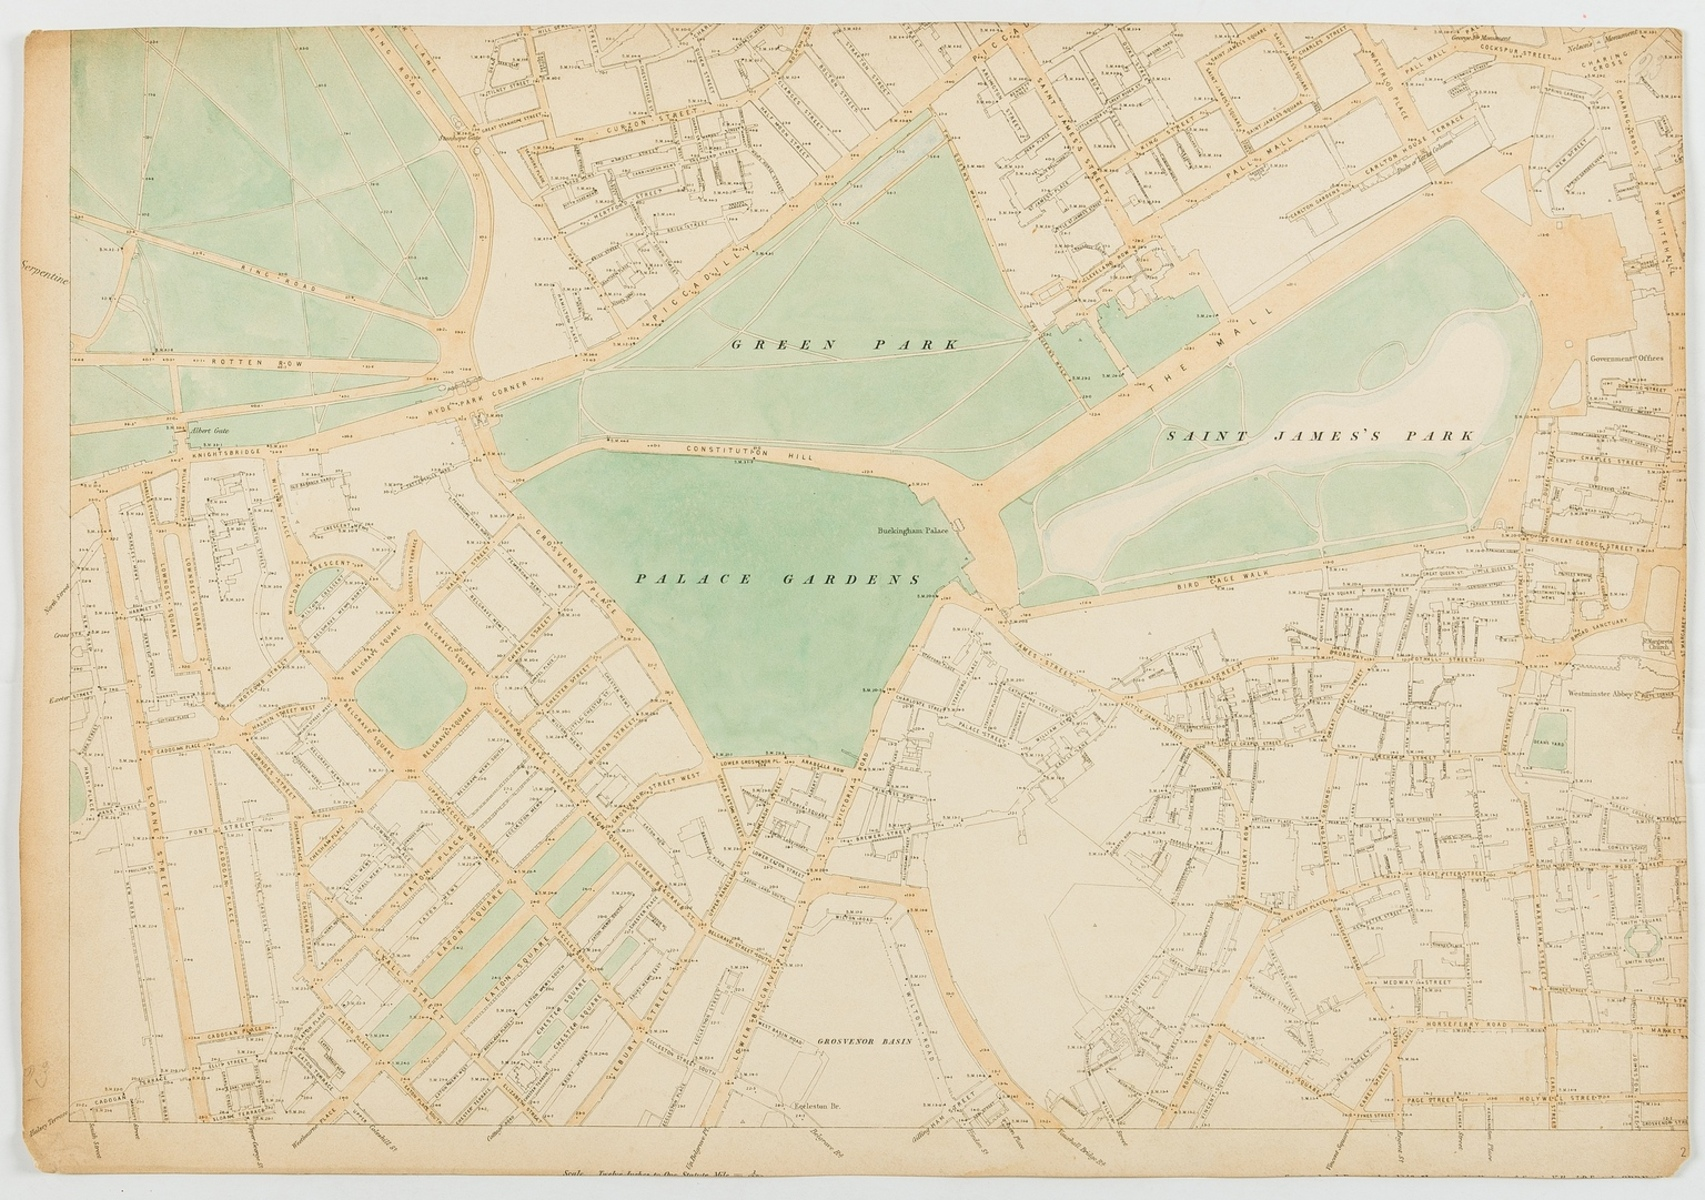 London.- Miscellaneous collection of single sheet maps of London, approx. 90 sheets, 19th century …